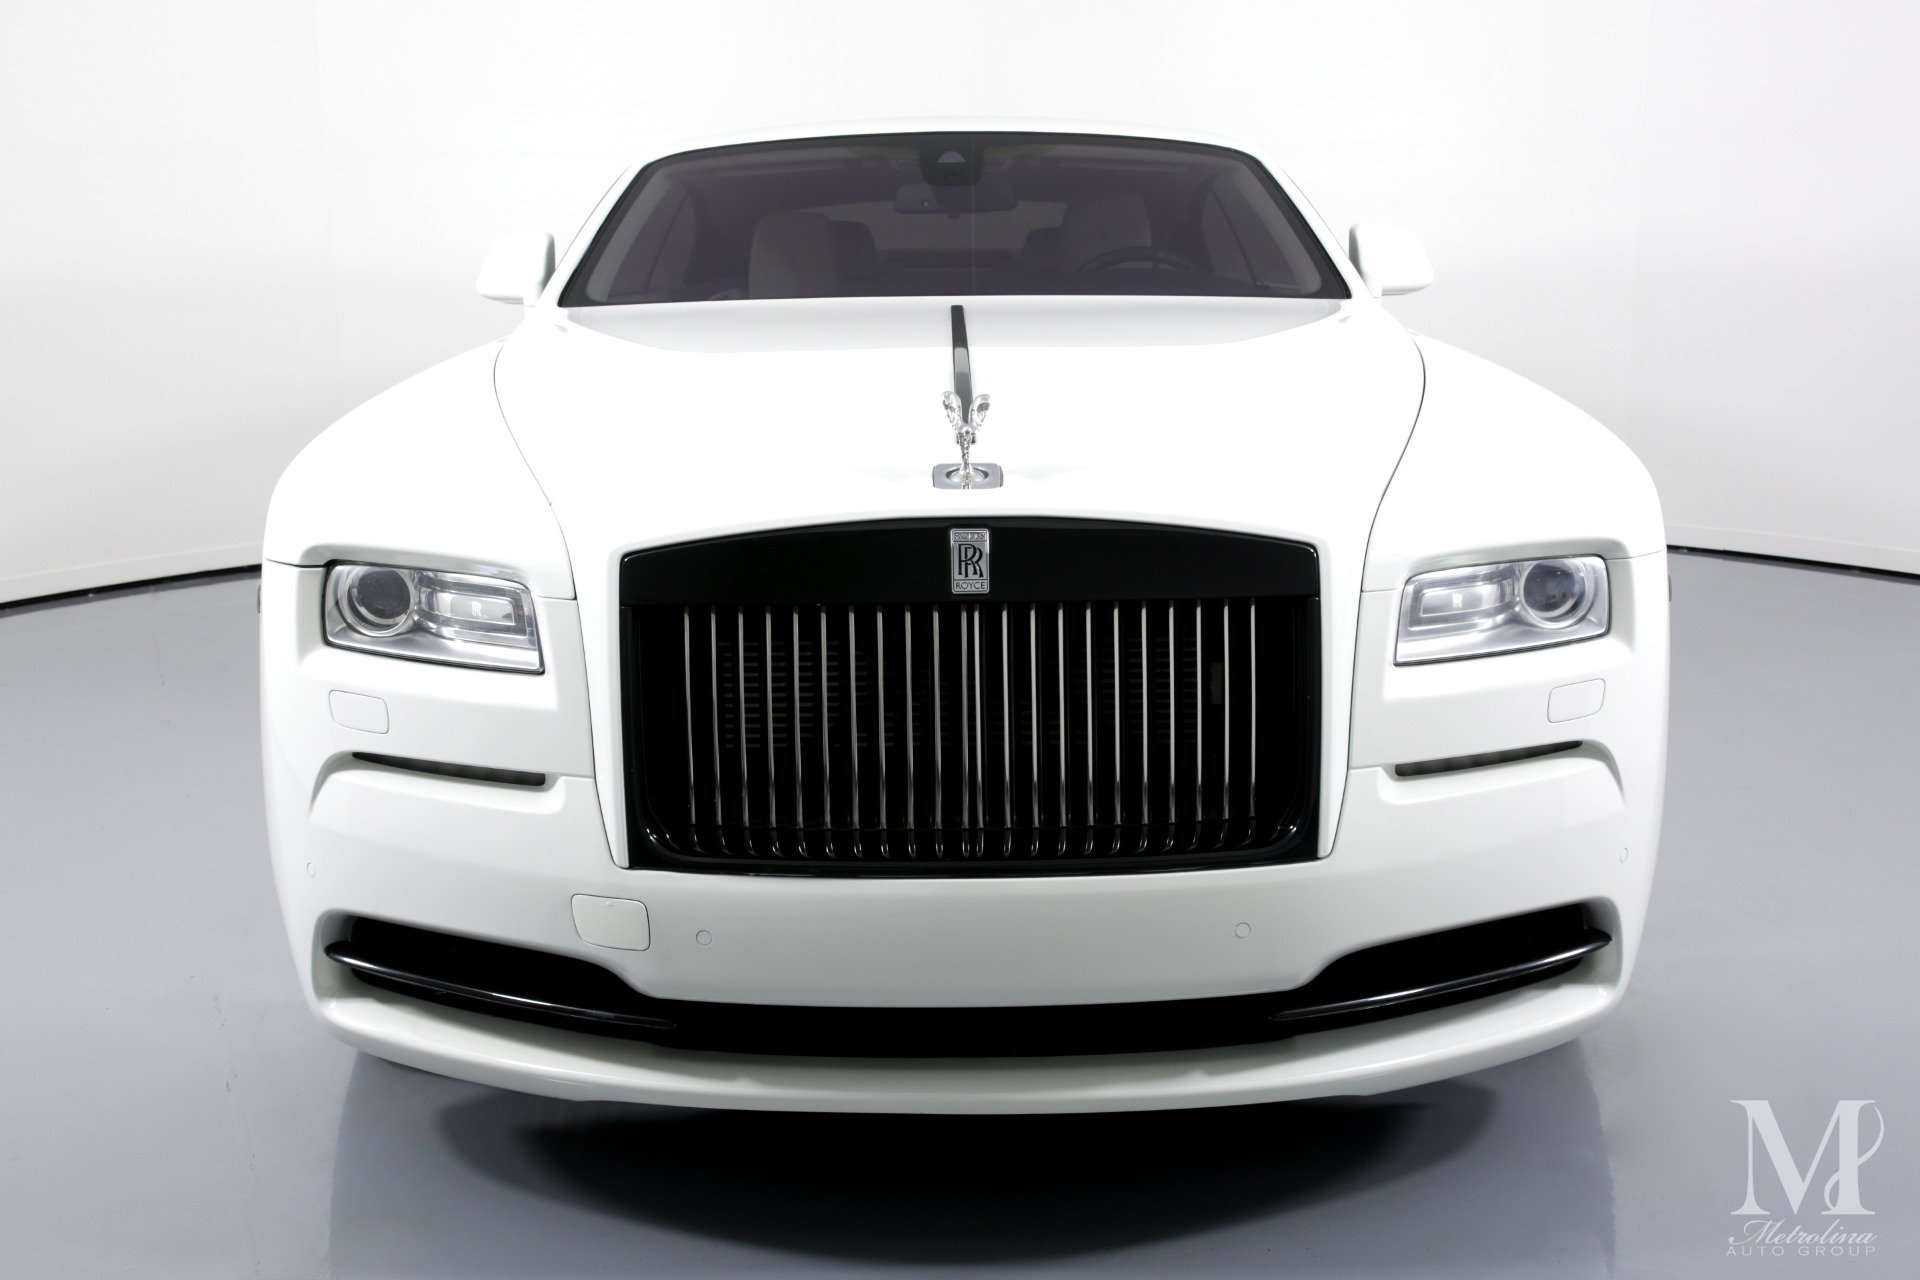 Used 2014 Rolls-Royce Wraith Base 2dr Coupe for sale Sold at Metrolina Auto Group in Charlotte NC 28217 - 3